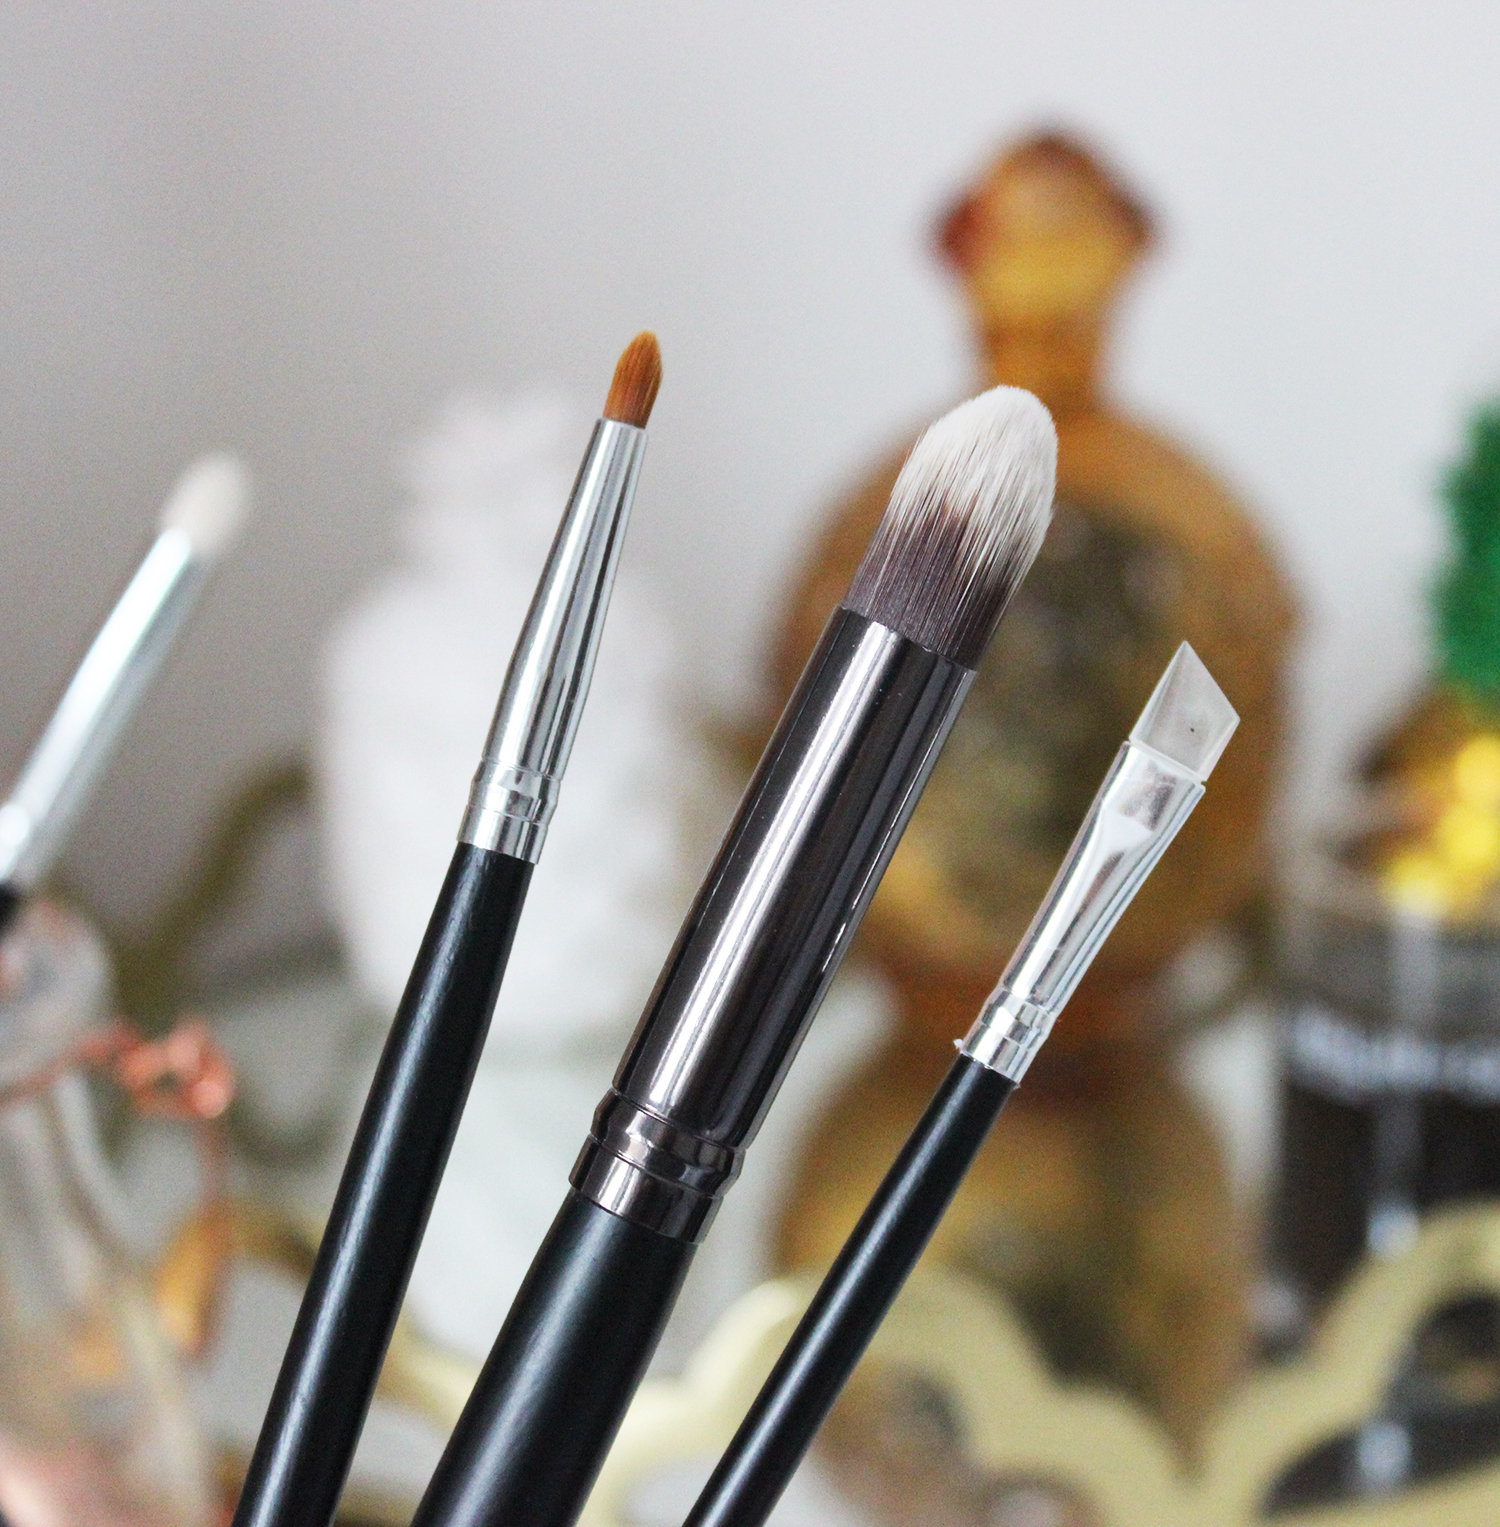 The best affordable makeup brushes from Crownbrush